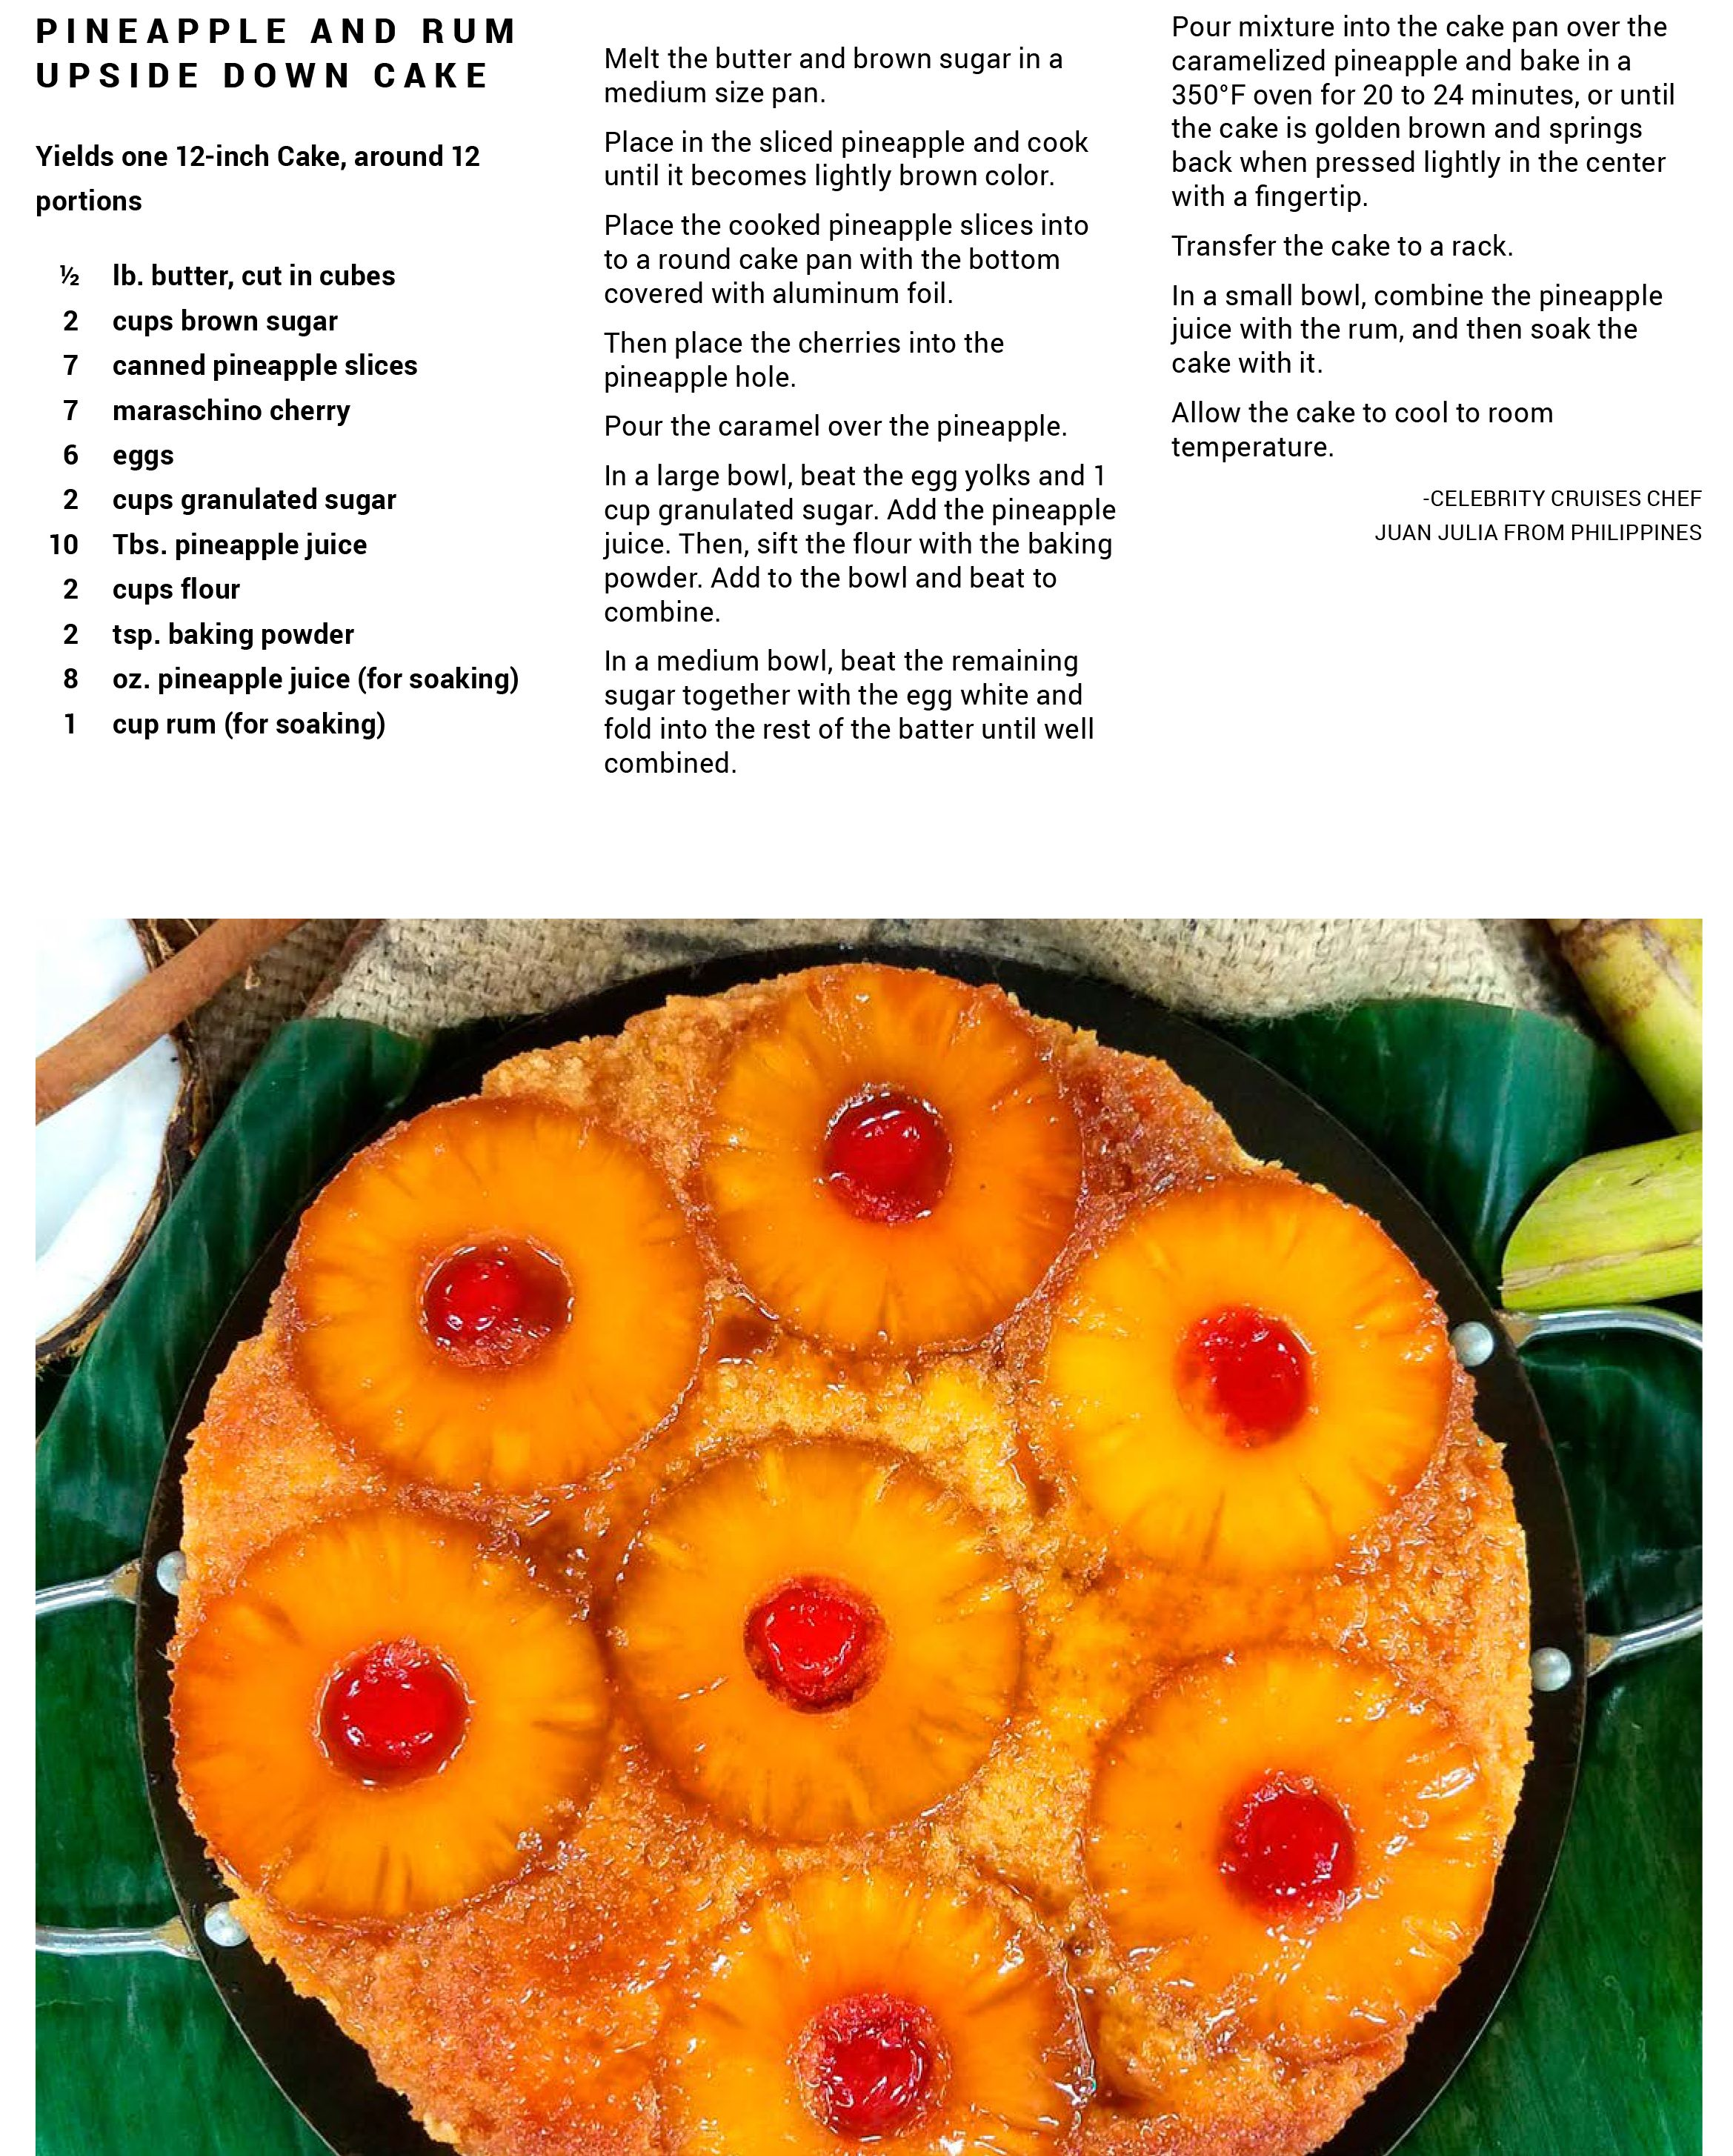 A Classic Rum Cake With A Twist, This Pineapple Upside